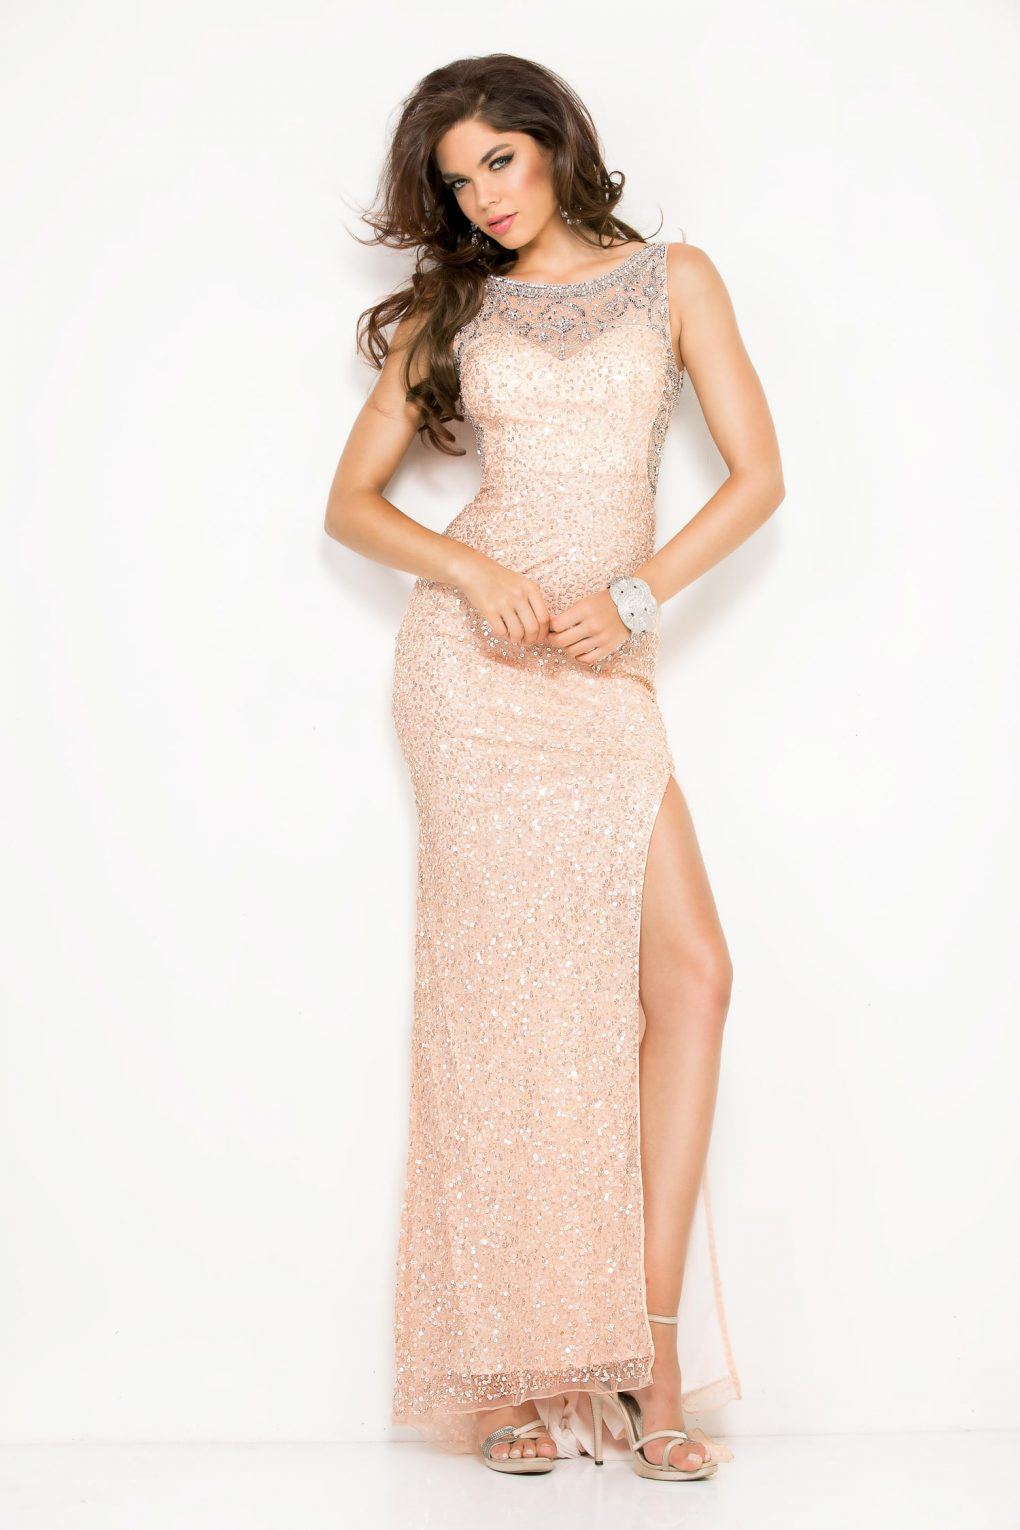 Alila Boutique Blush Sequin Gown by Scala.